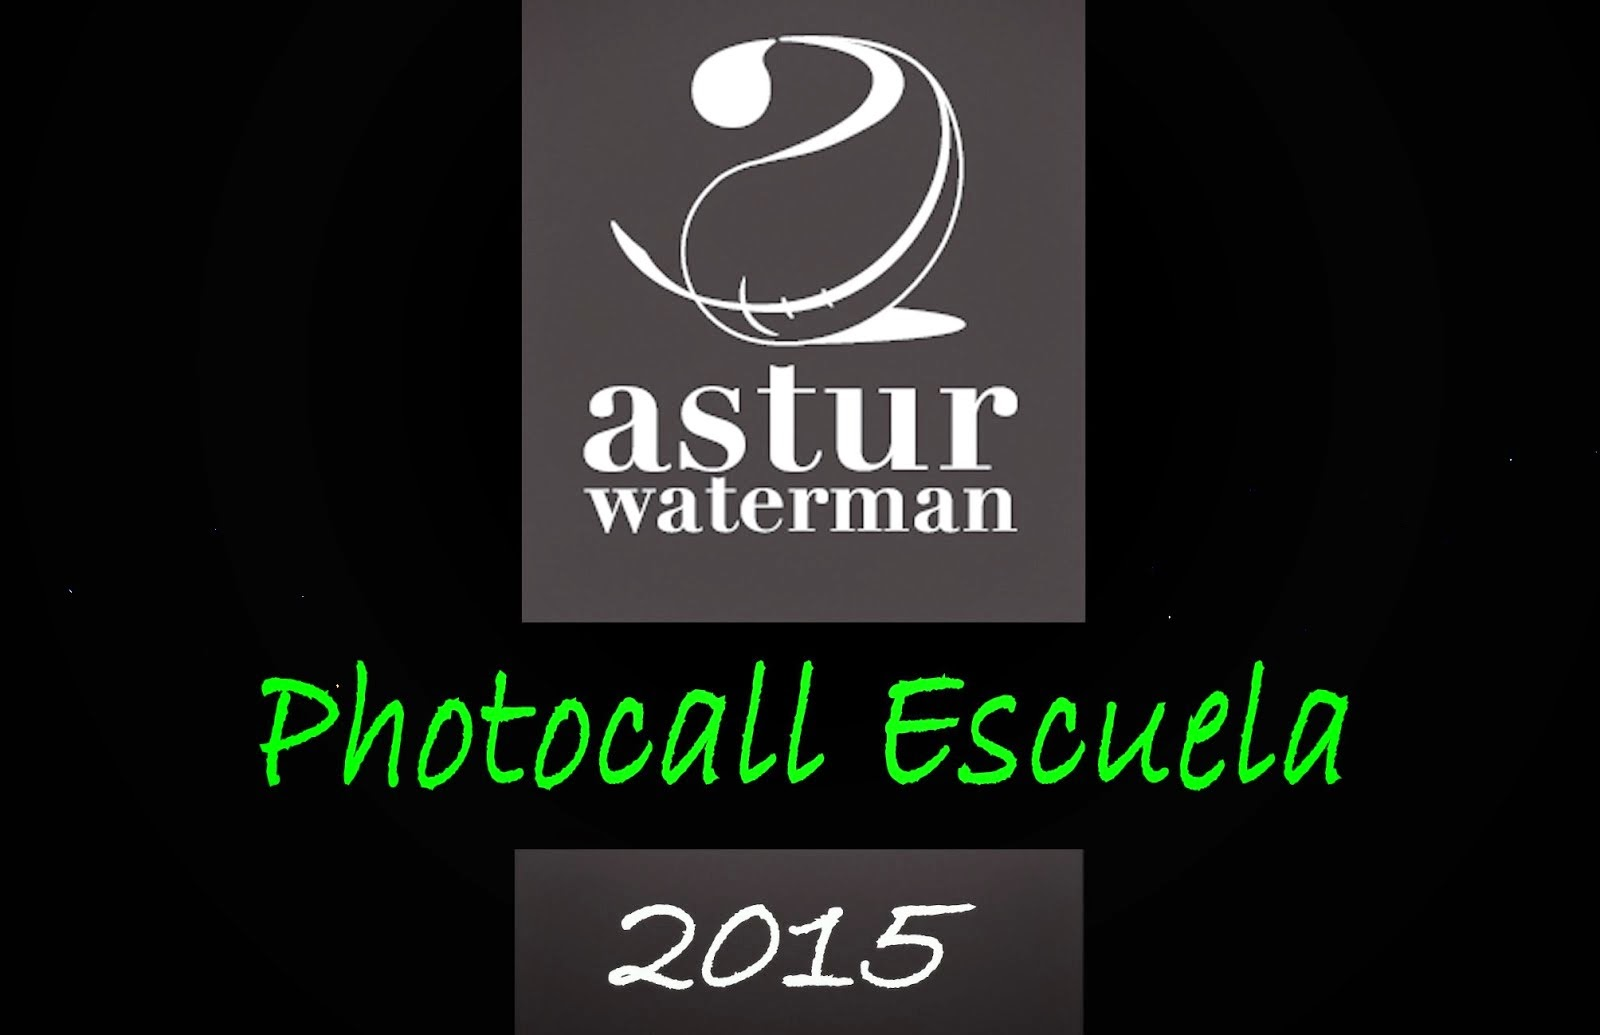 Photocall Escuela 2015